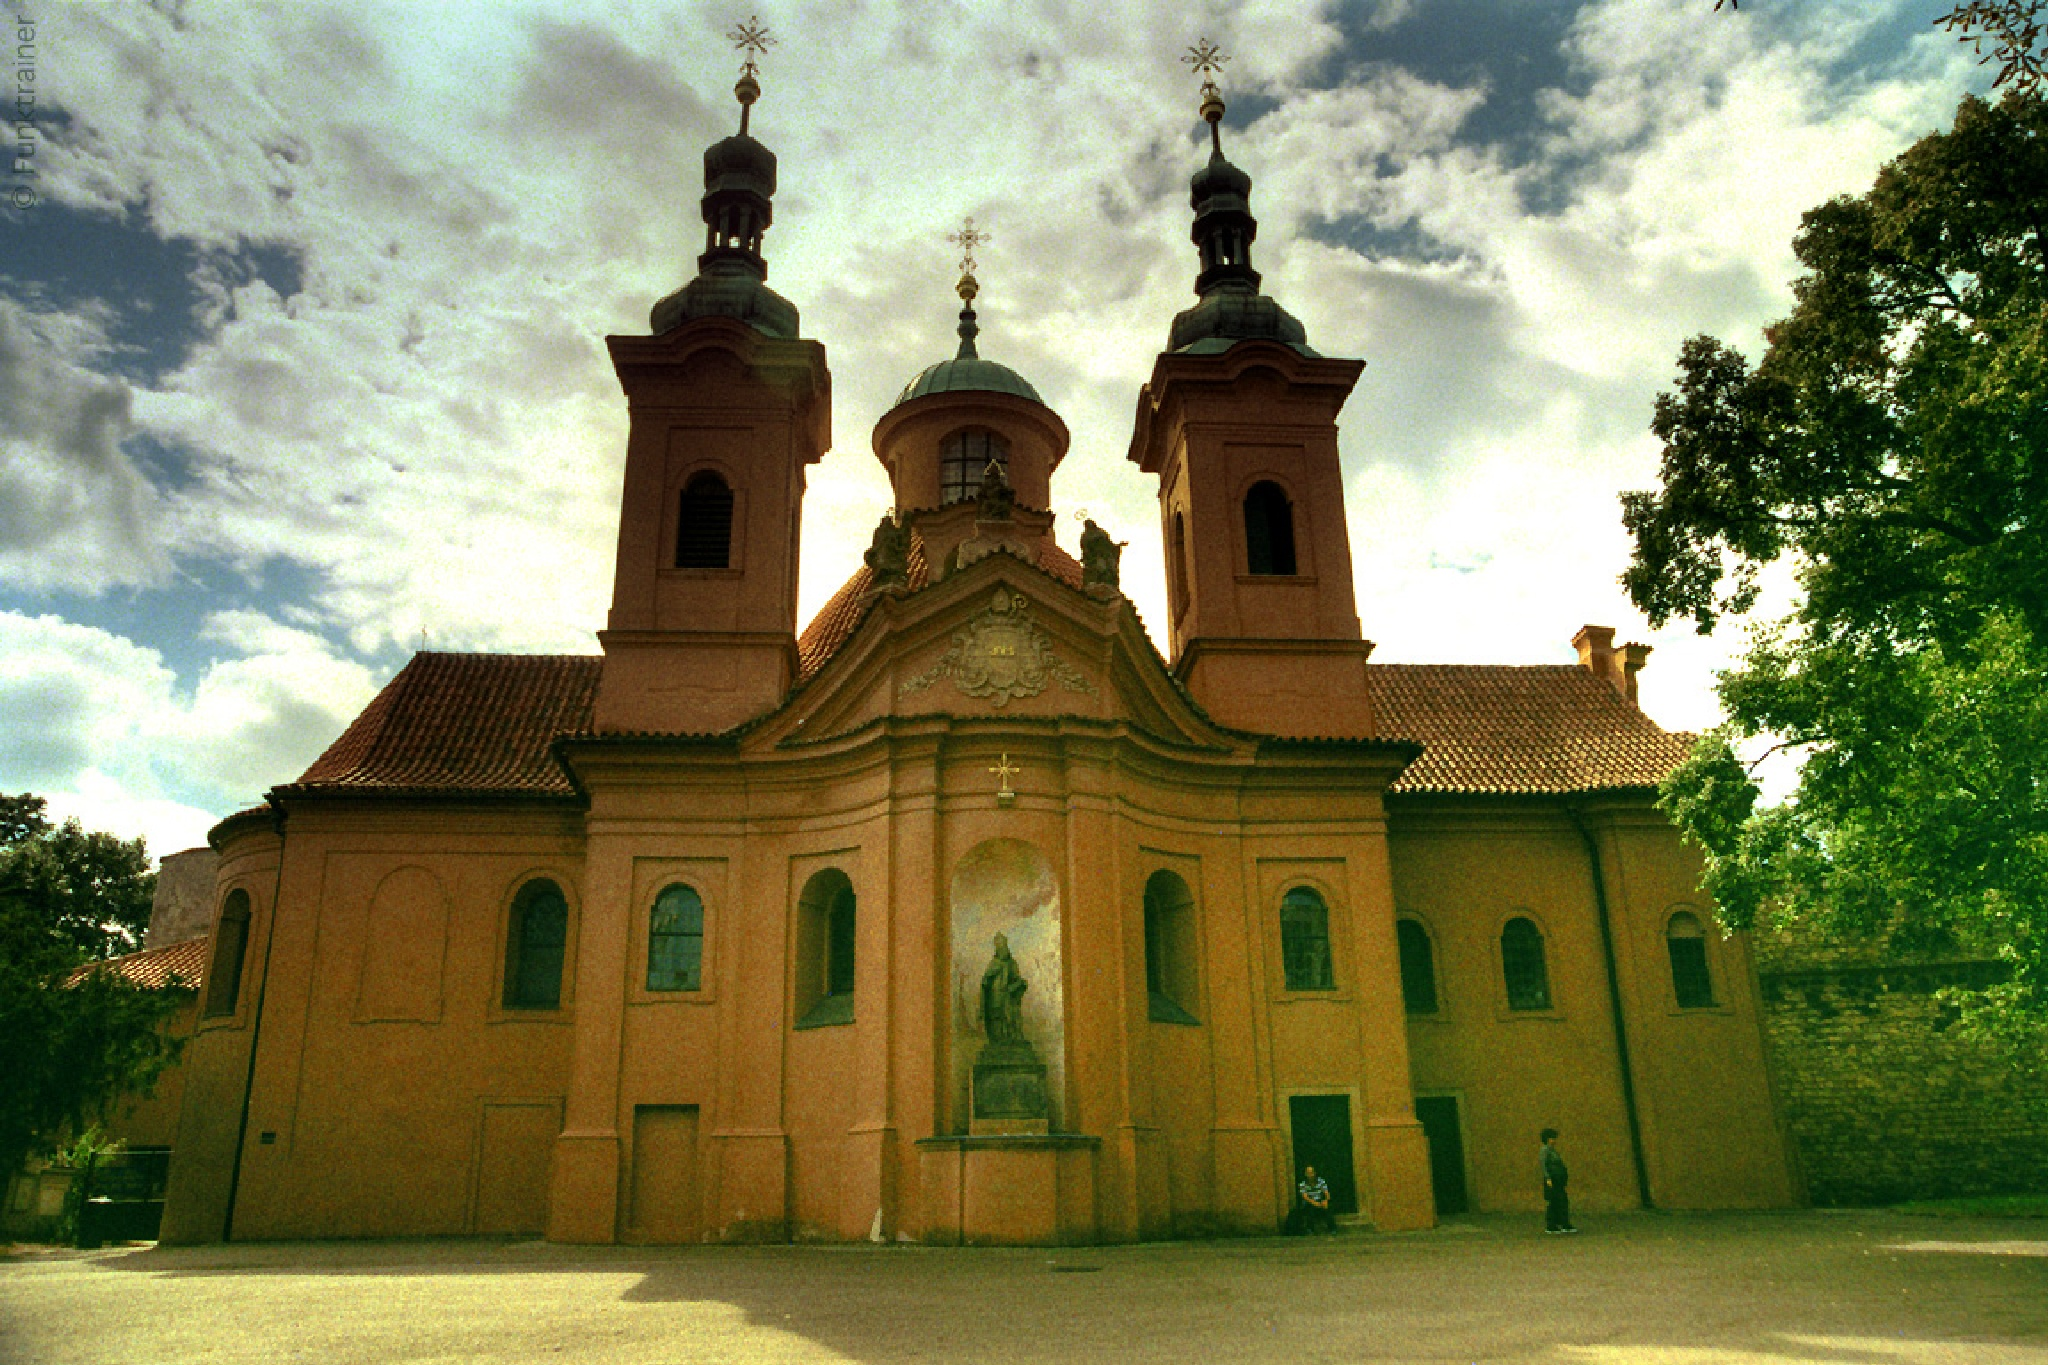 Saint Lawrence Cathedral by Funktrainer